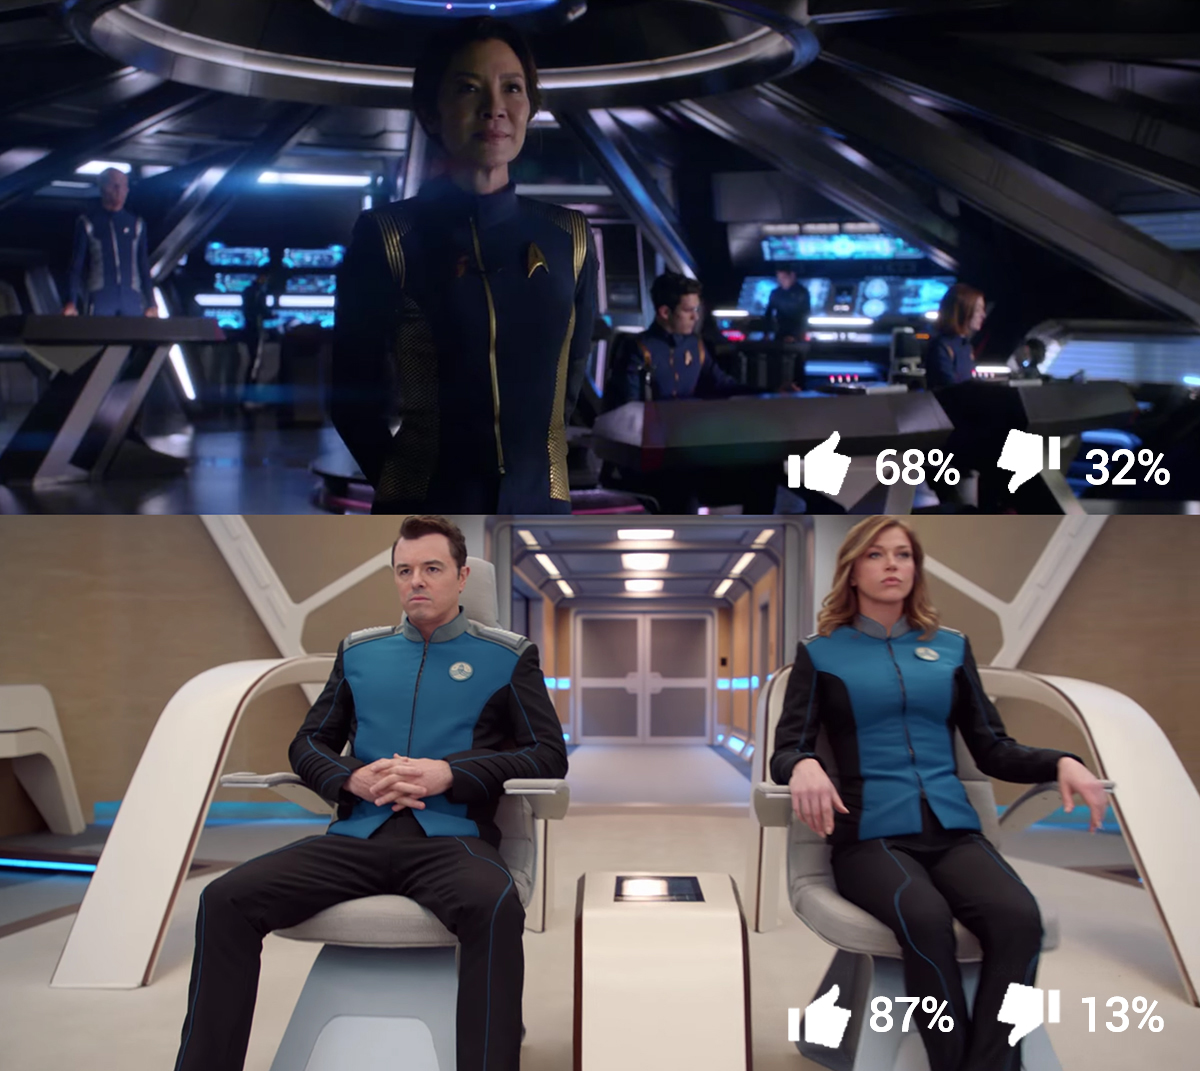 star trek fans dating How to meet girls who like star trek it'll be easy for her to accept any elements of your star trek fan hit the trek-friendly social networking or dating.